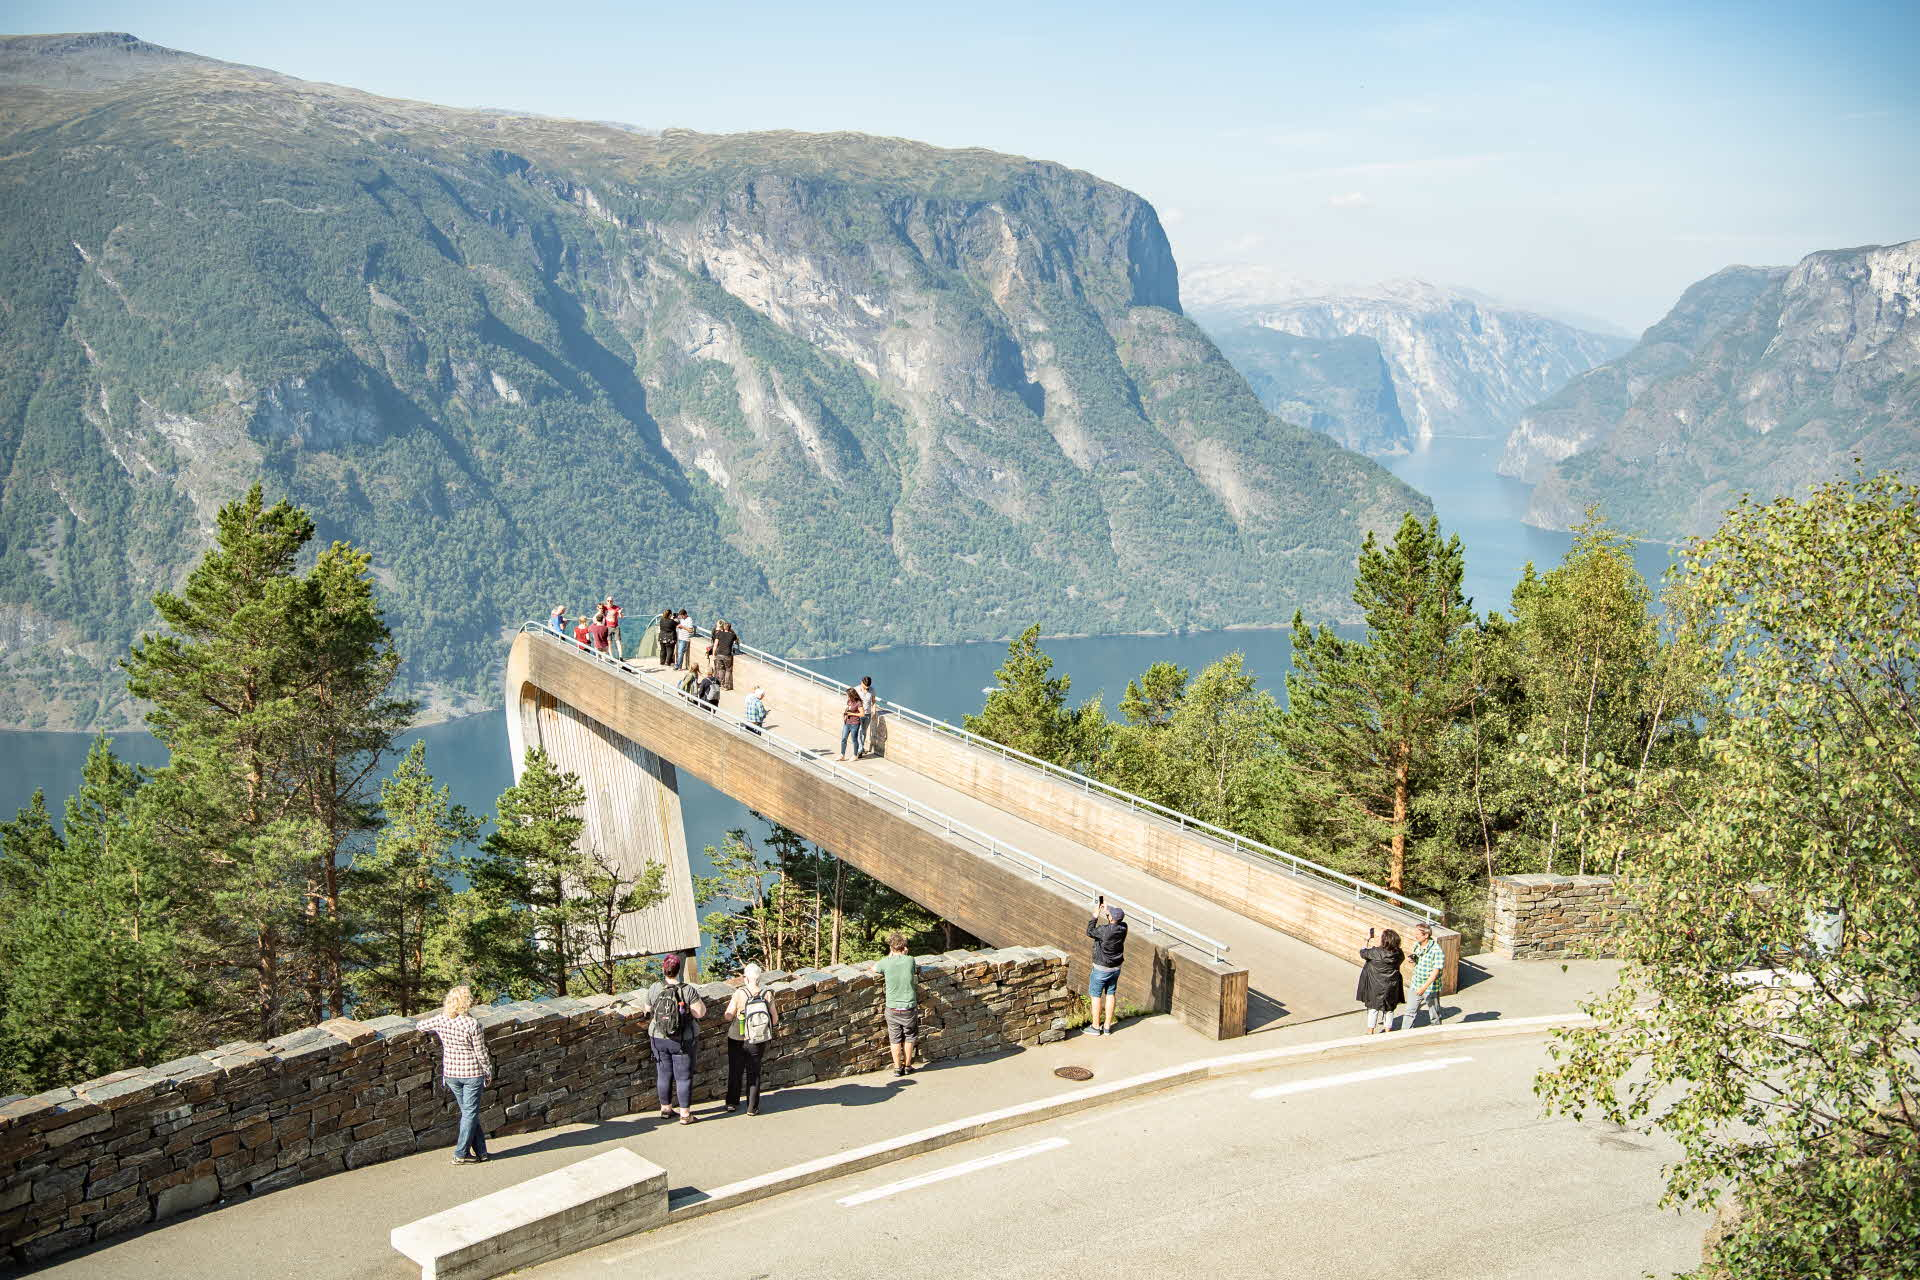 People admiring the view across the Aurlandsfjord from the Stegastein viewing platform